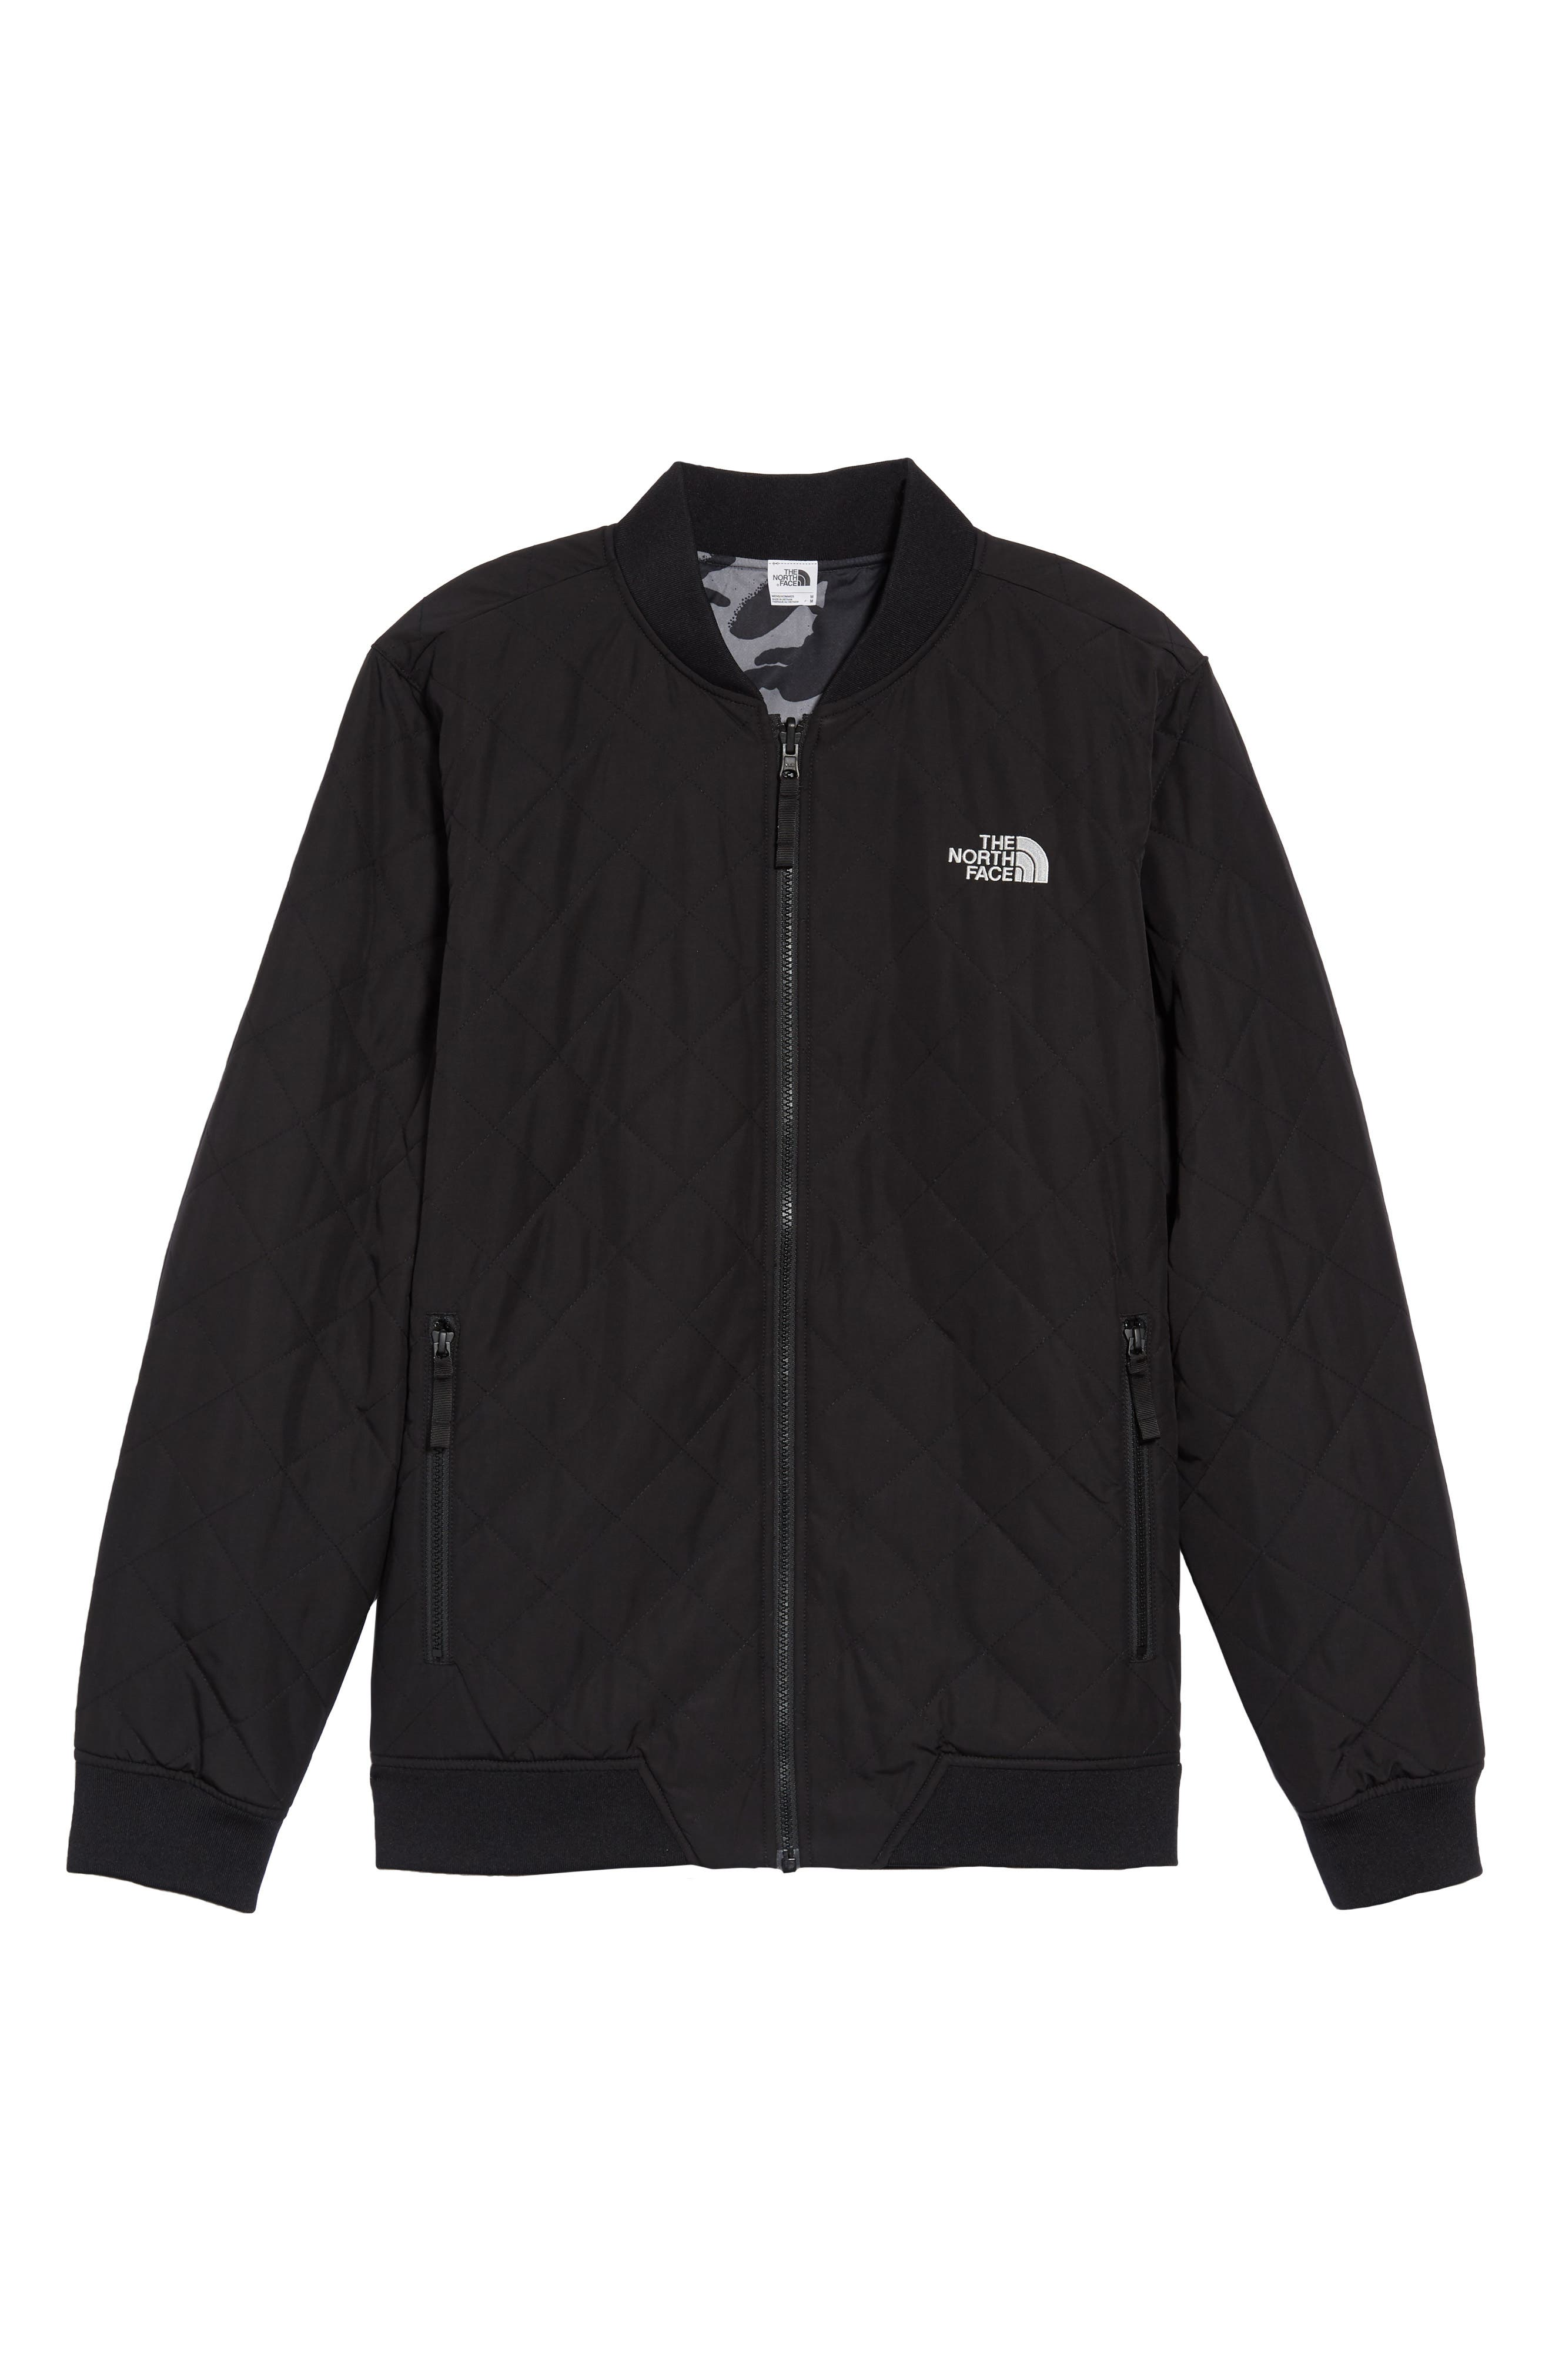 THE NORTH FACE, Jester Reversible Bomber Jacket, Alternate thumbnail 7, color, 001